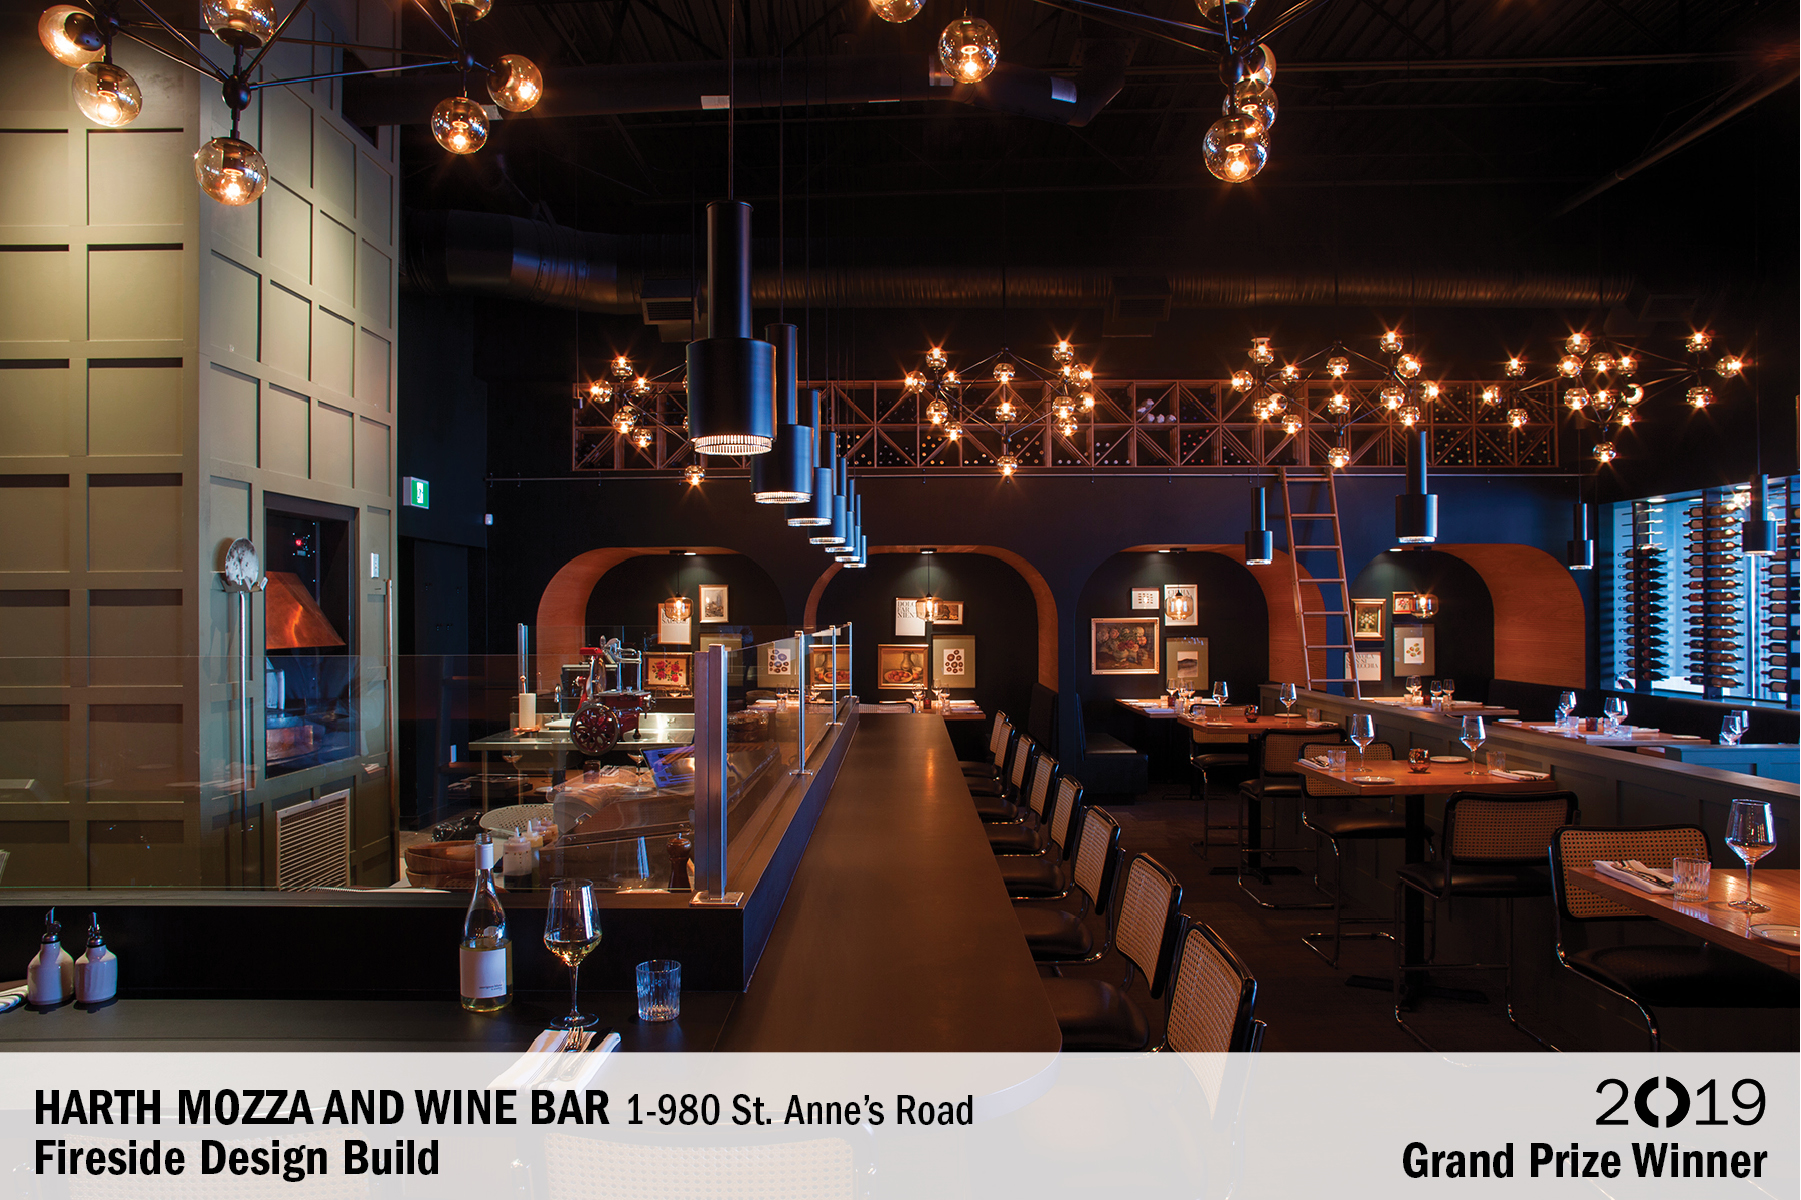 Harth Mozza & Wine Bar